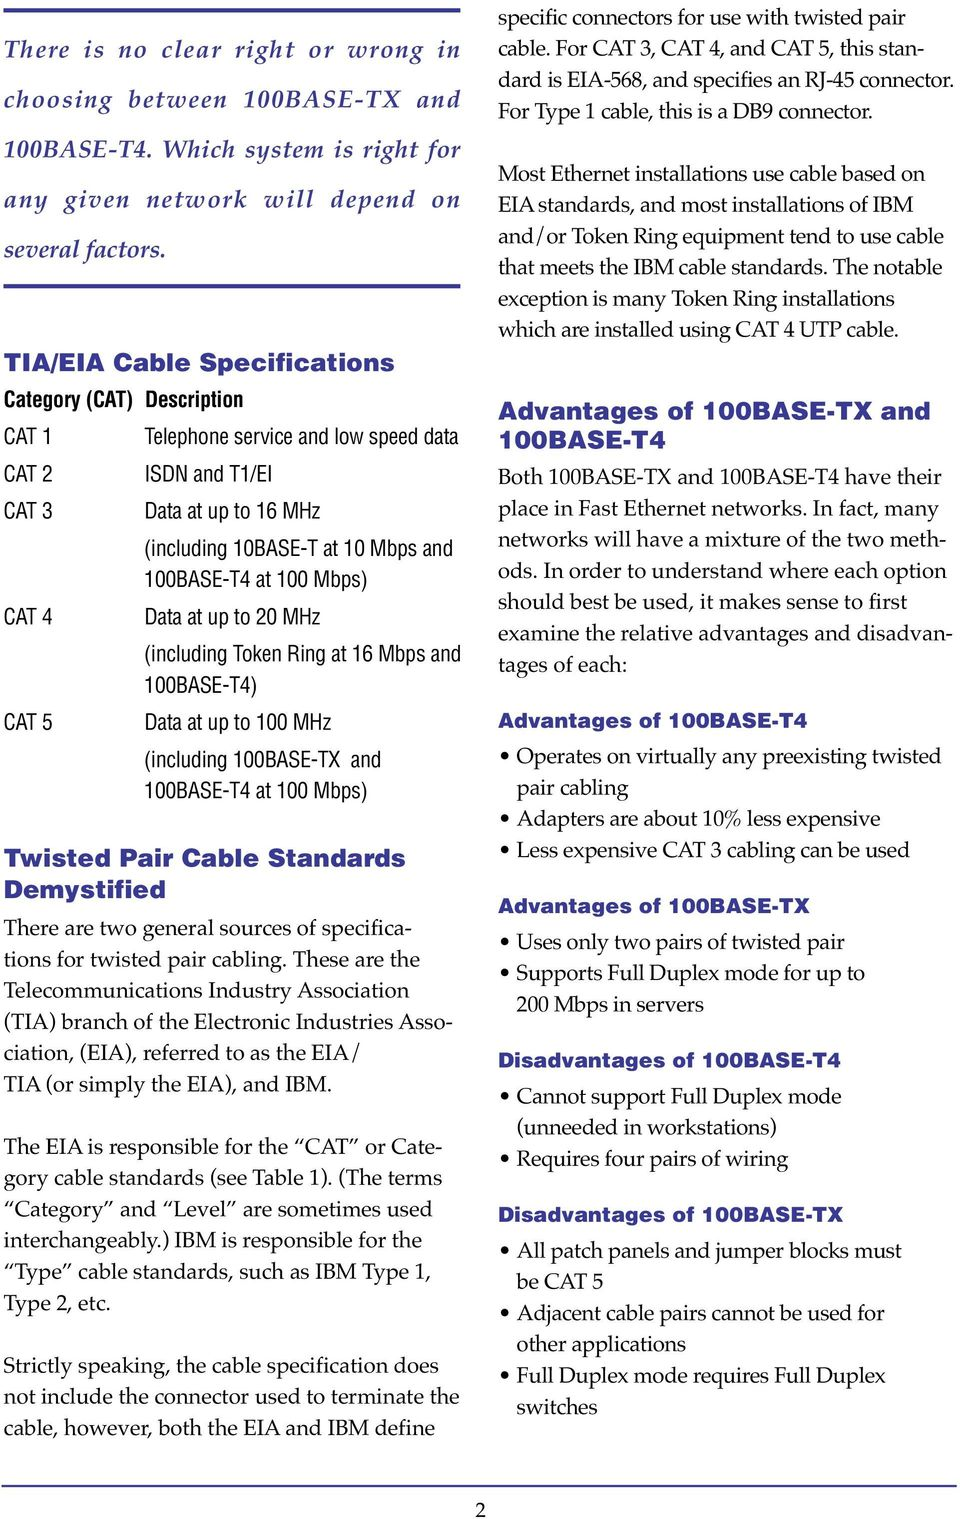 Mbps) CAT 4 Data at up to 20 MHz (including Token Ring at 16 Mbps and 100BASE-T4) CAT 5 Data at up to 100 MHz (including 100BASE-TX and 100BASE-T4 at 100 Mbps) Twisted Pair Cable Standards